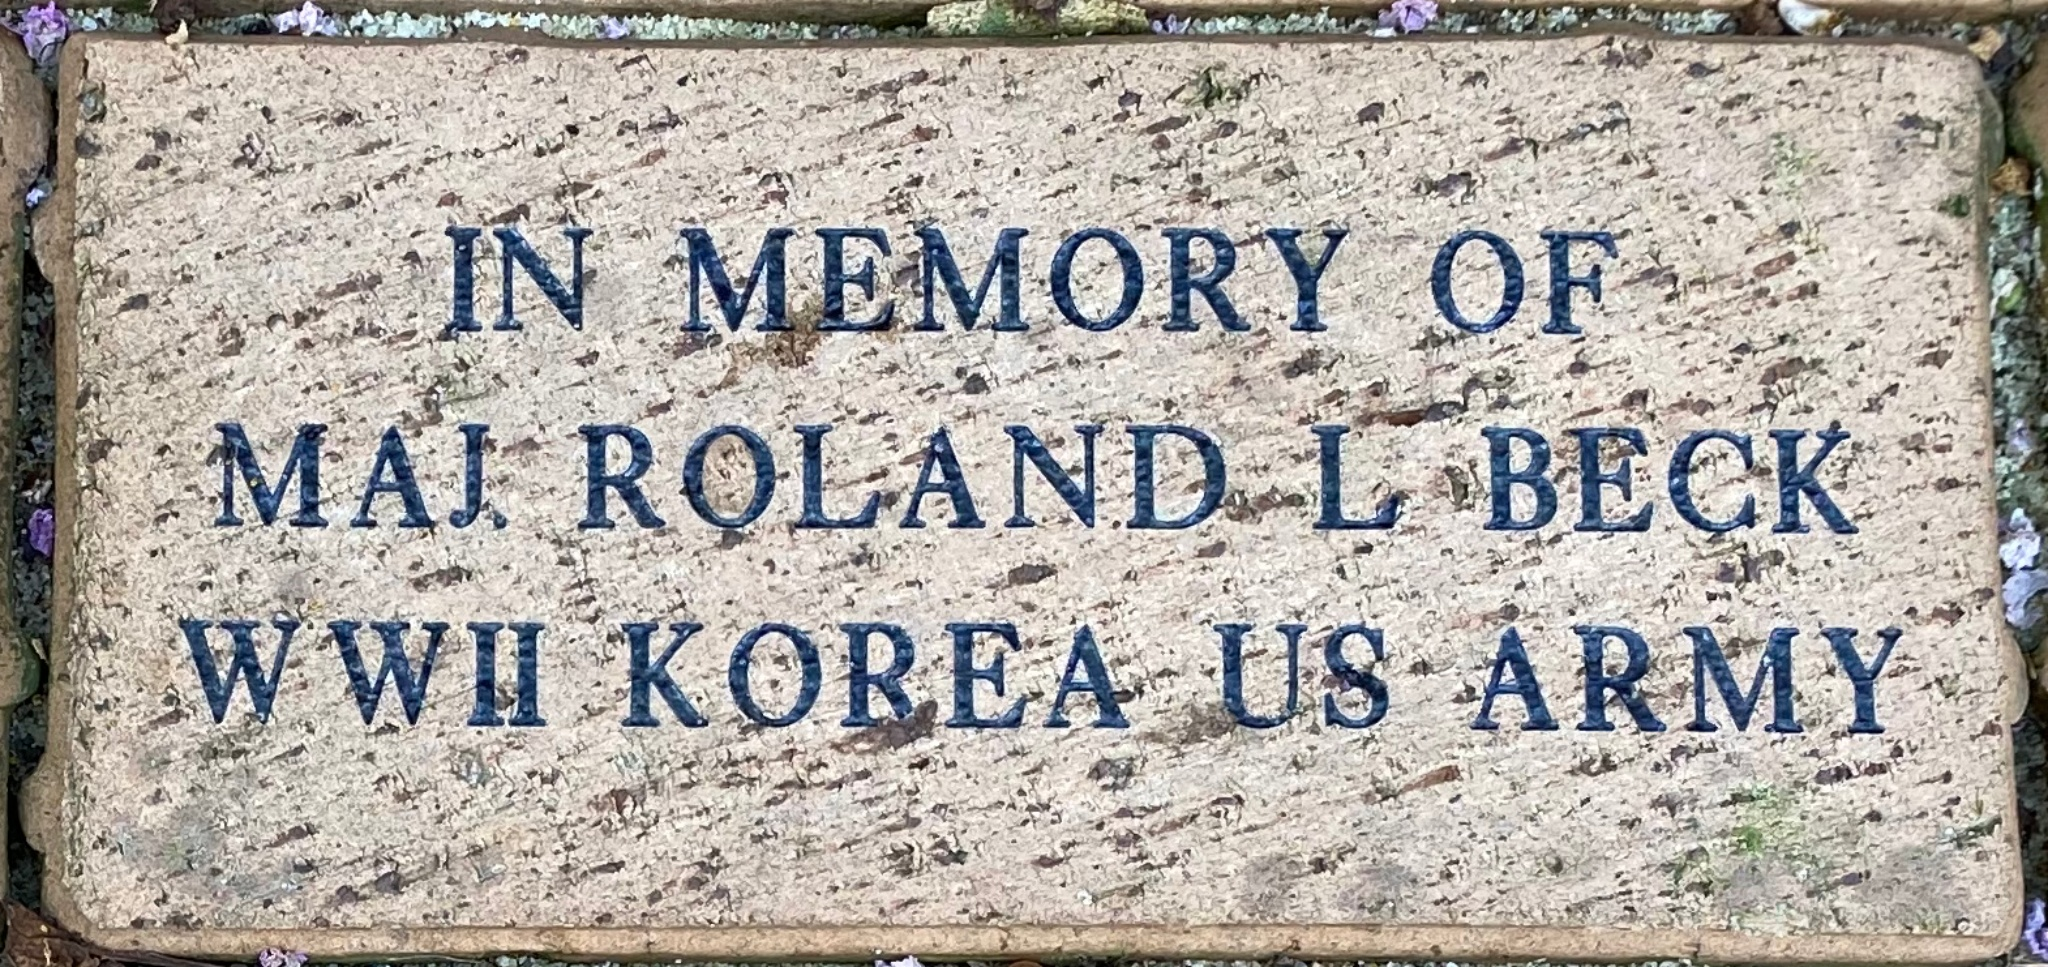 IN MEMORY OF  MAJ. ROLAND L. BECK WWII KOREA US ARMY